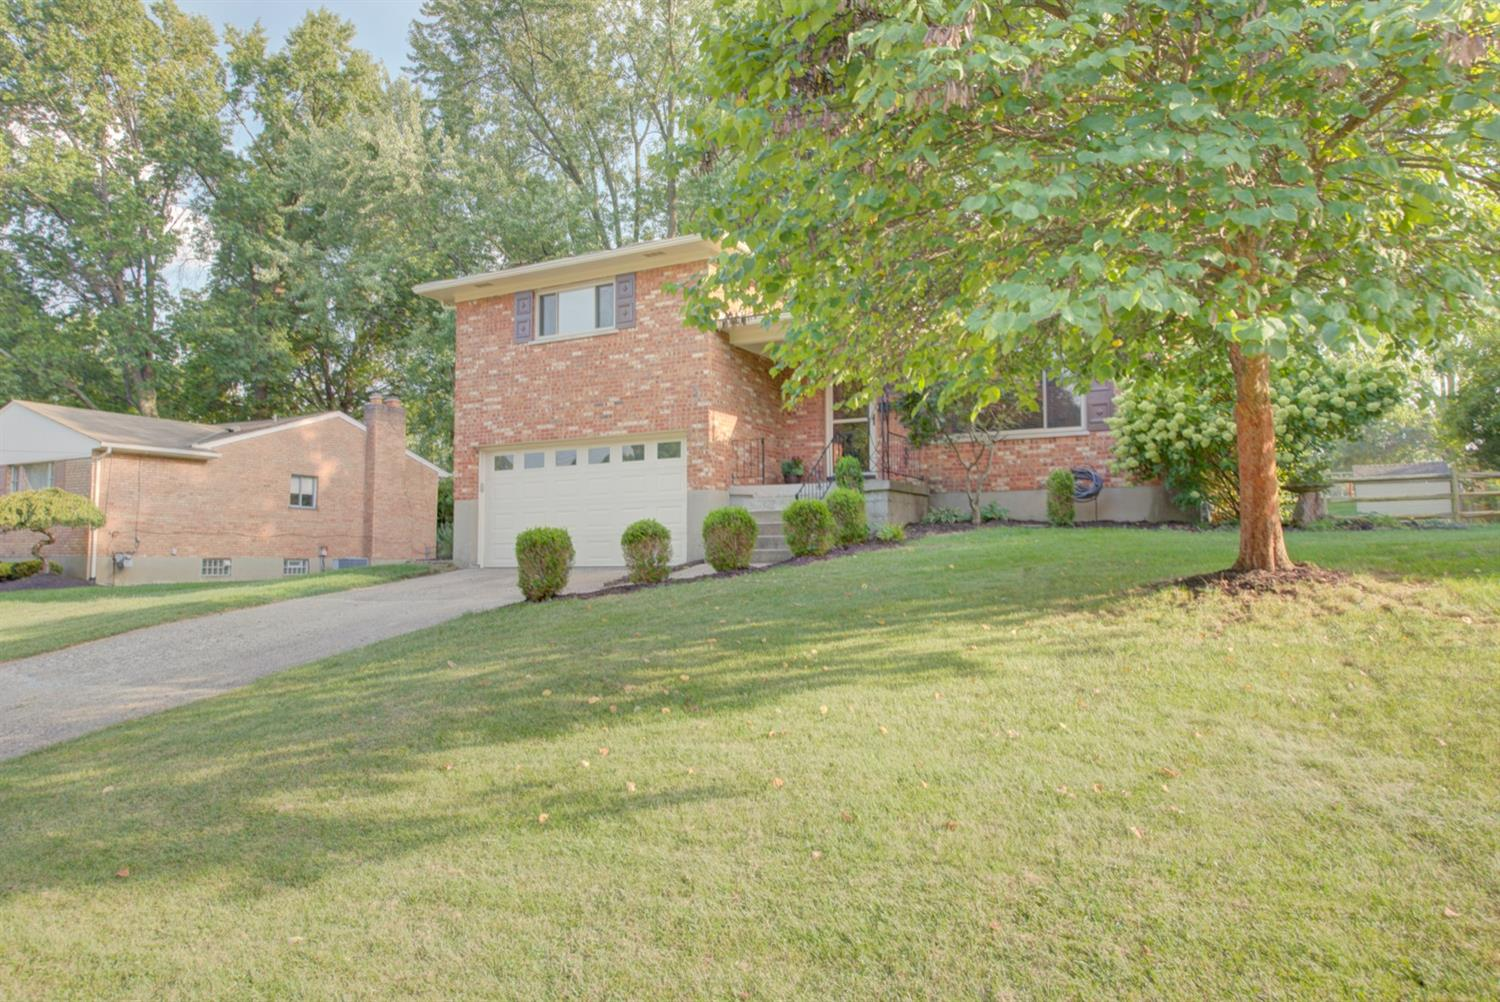 3955 Tramore Dr Dillonvale, OH